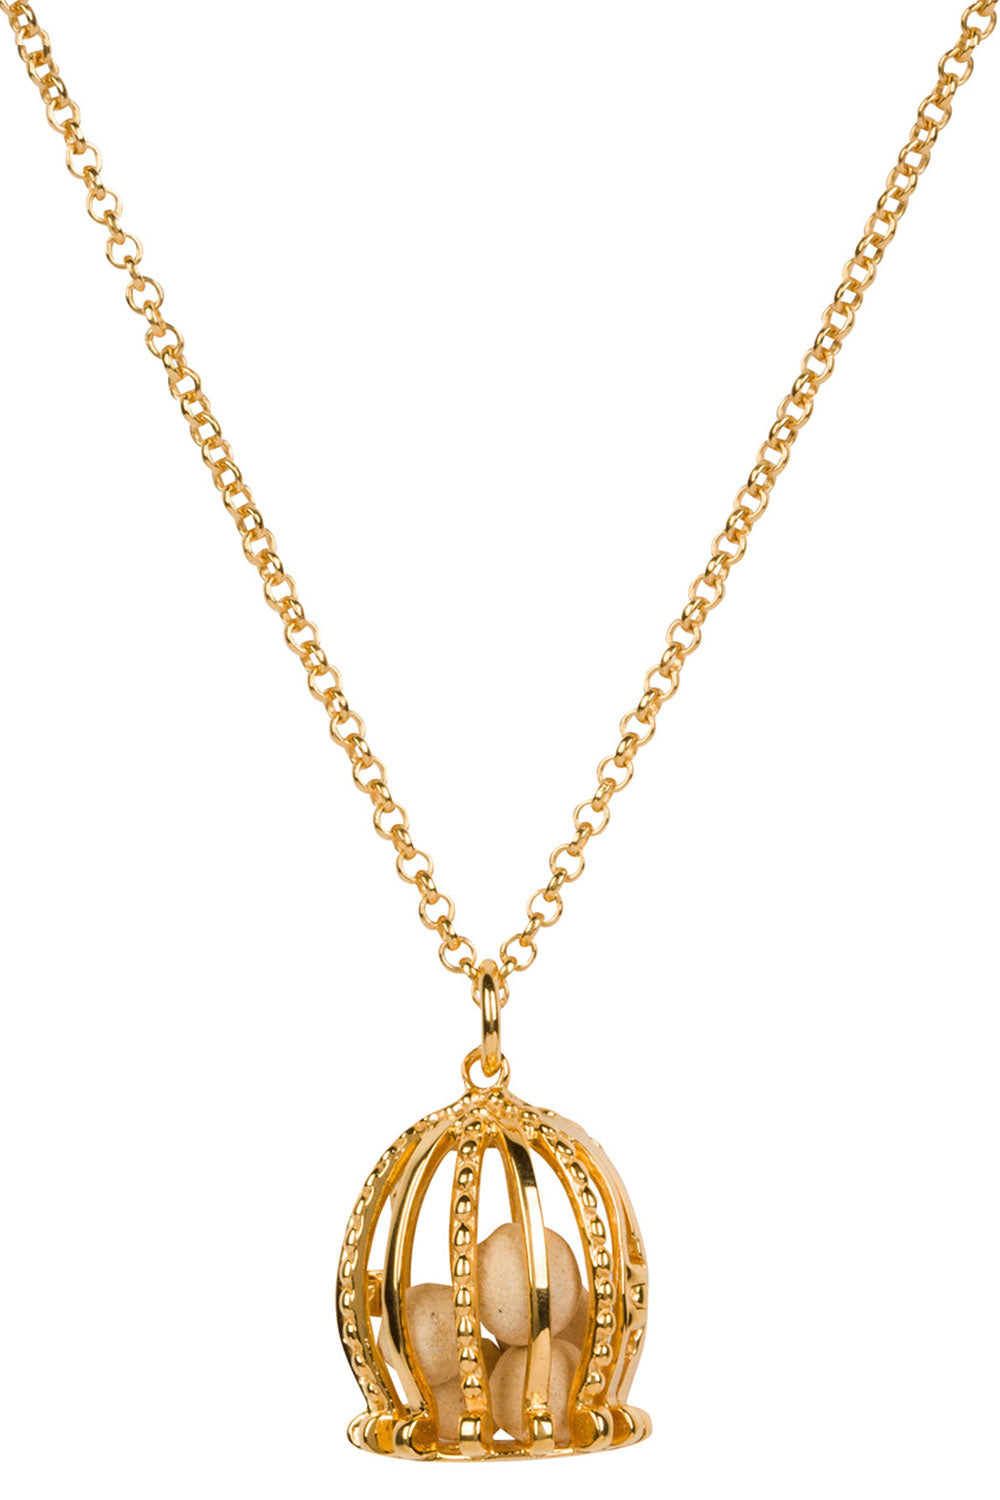 Imperial Charm Necklace - Gold